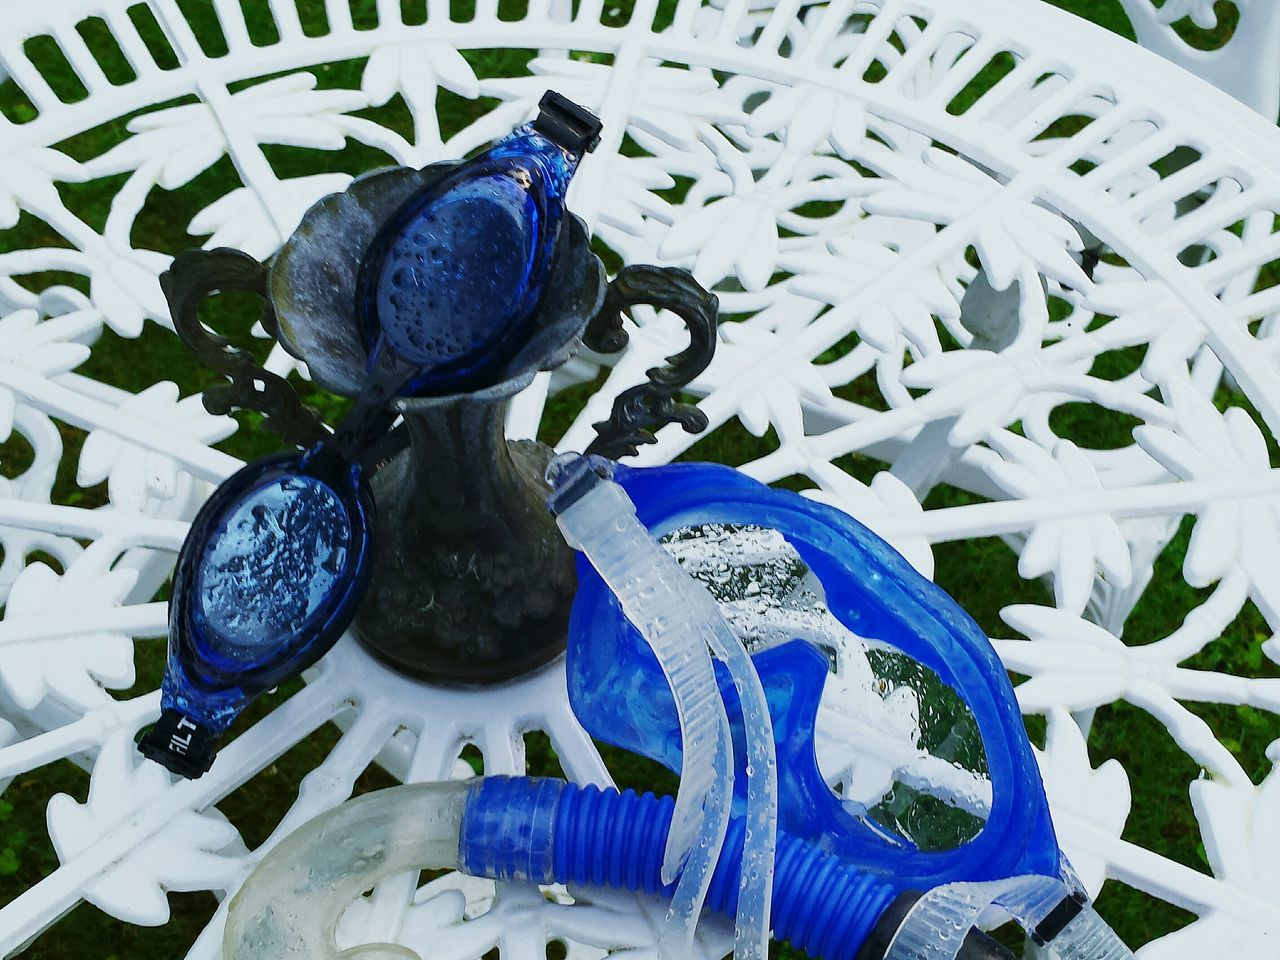 Swim Glasses Water Drops Water Droplets Showcase July Drops Of Water Fine Art Photography Beliebte Fotos Ladyphotographerofthemonth Close-up Shot Close Up Close-up Fresh And Clean After The Rain Rainy Day Blue And White Metal Table White Table Snorkeling Mask Summer Feelings  Fresh Scent Enjoying Life Colour Of Life